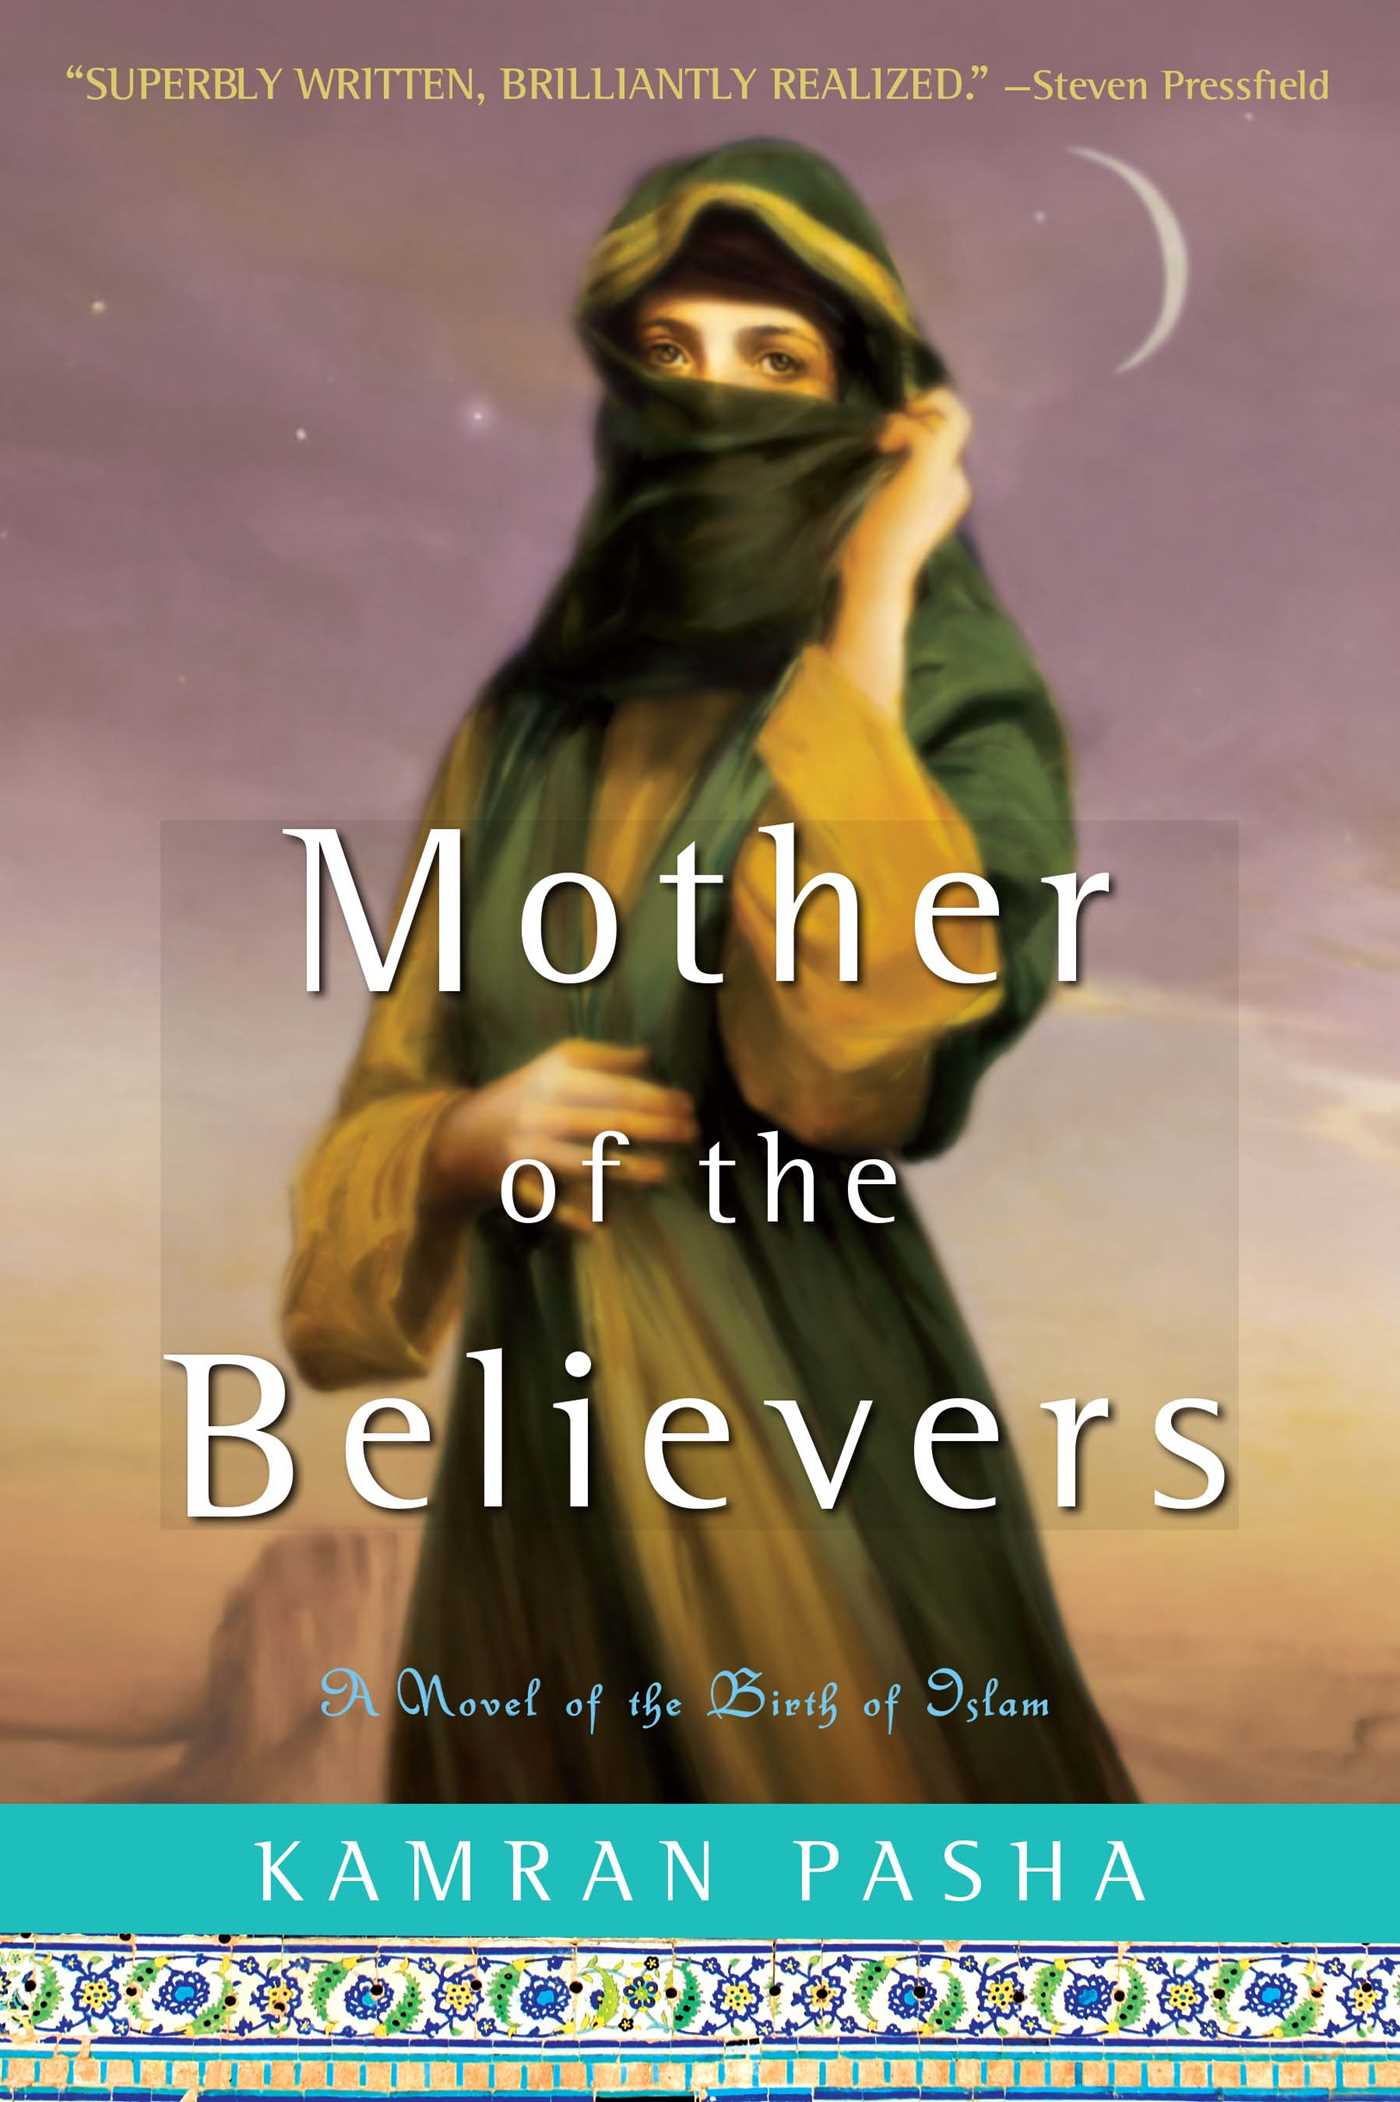 Mother-of-the-believers-9781416579915_hr